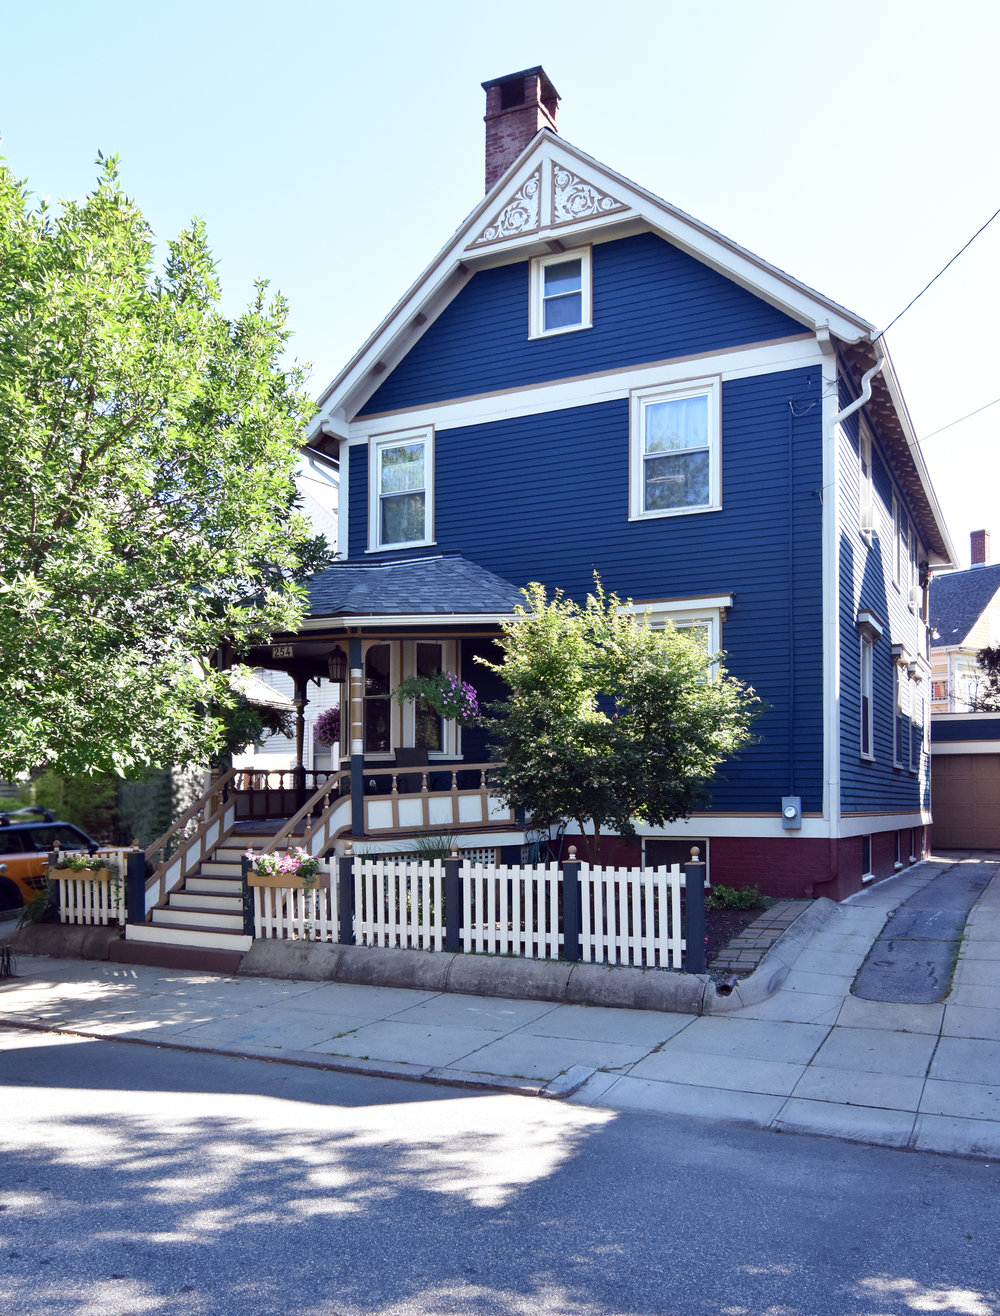 WBNA HOUSE TOUR  FROM VACANT TO VIBRANT 254 Knight Street   BUY TICKETS